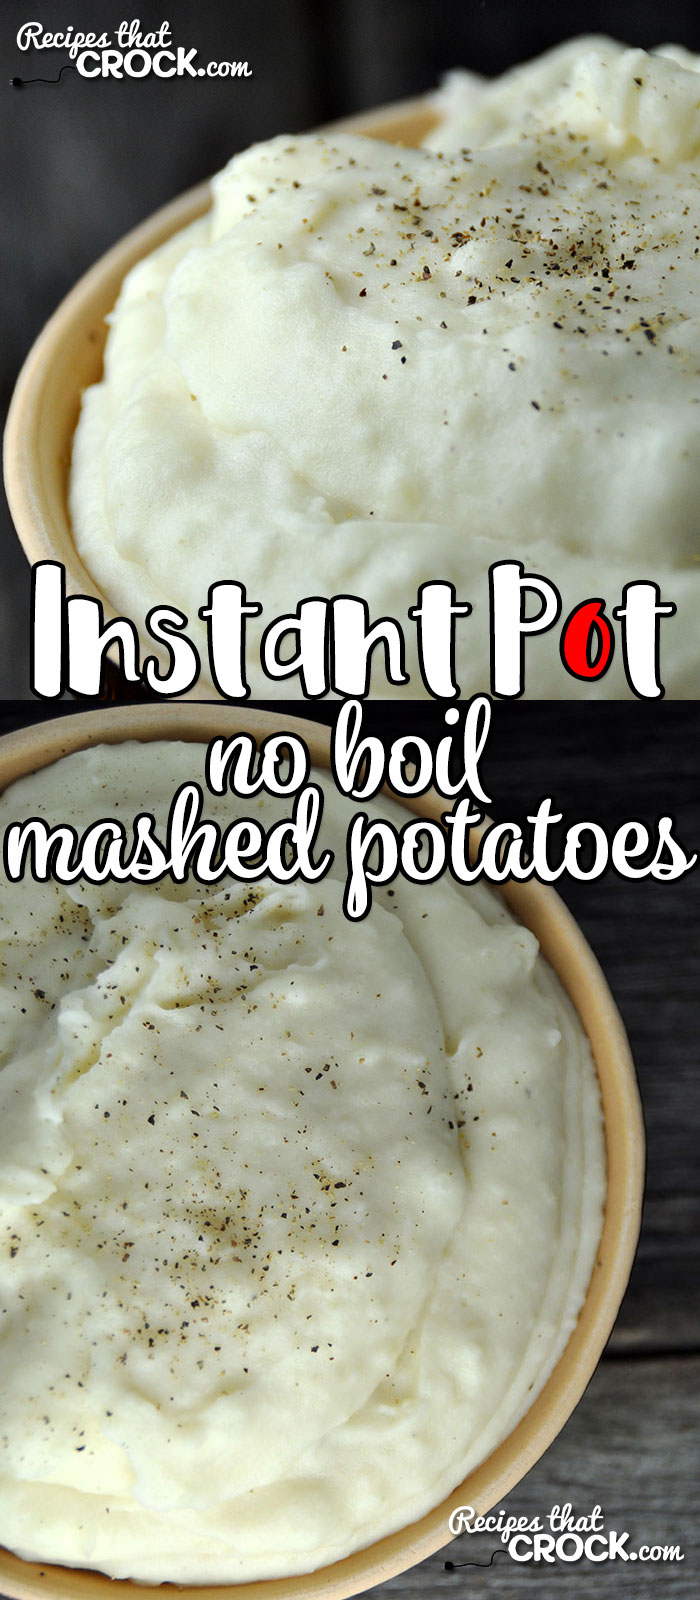 If you are looking for a super easy way to make up a big ol' batch of delicious and creamy mashed potatoes on a busy weeknight or chaotic weekend? This Instant Pot No Boil Mashed Potatoes recipe is just what you need! Yum!